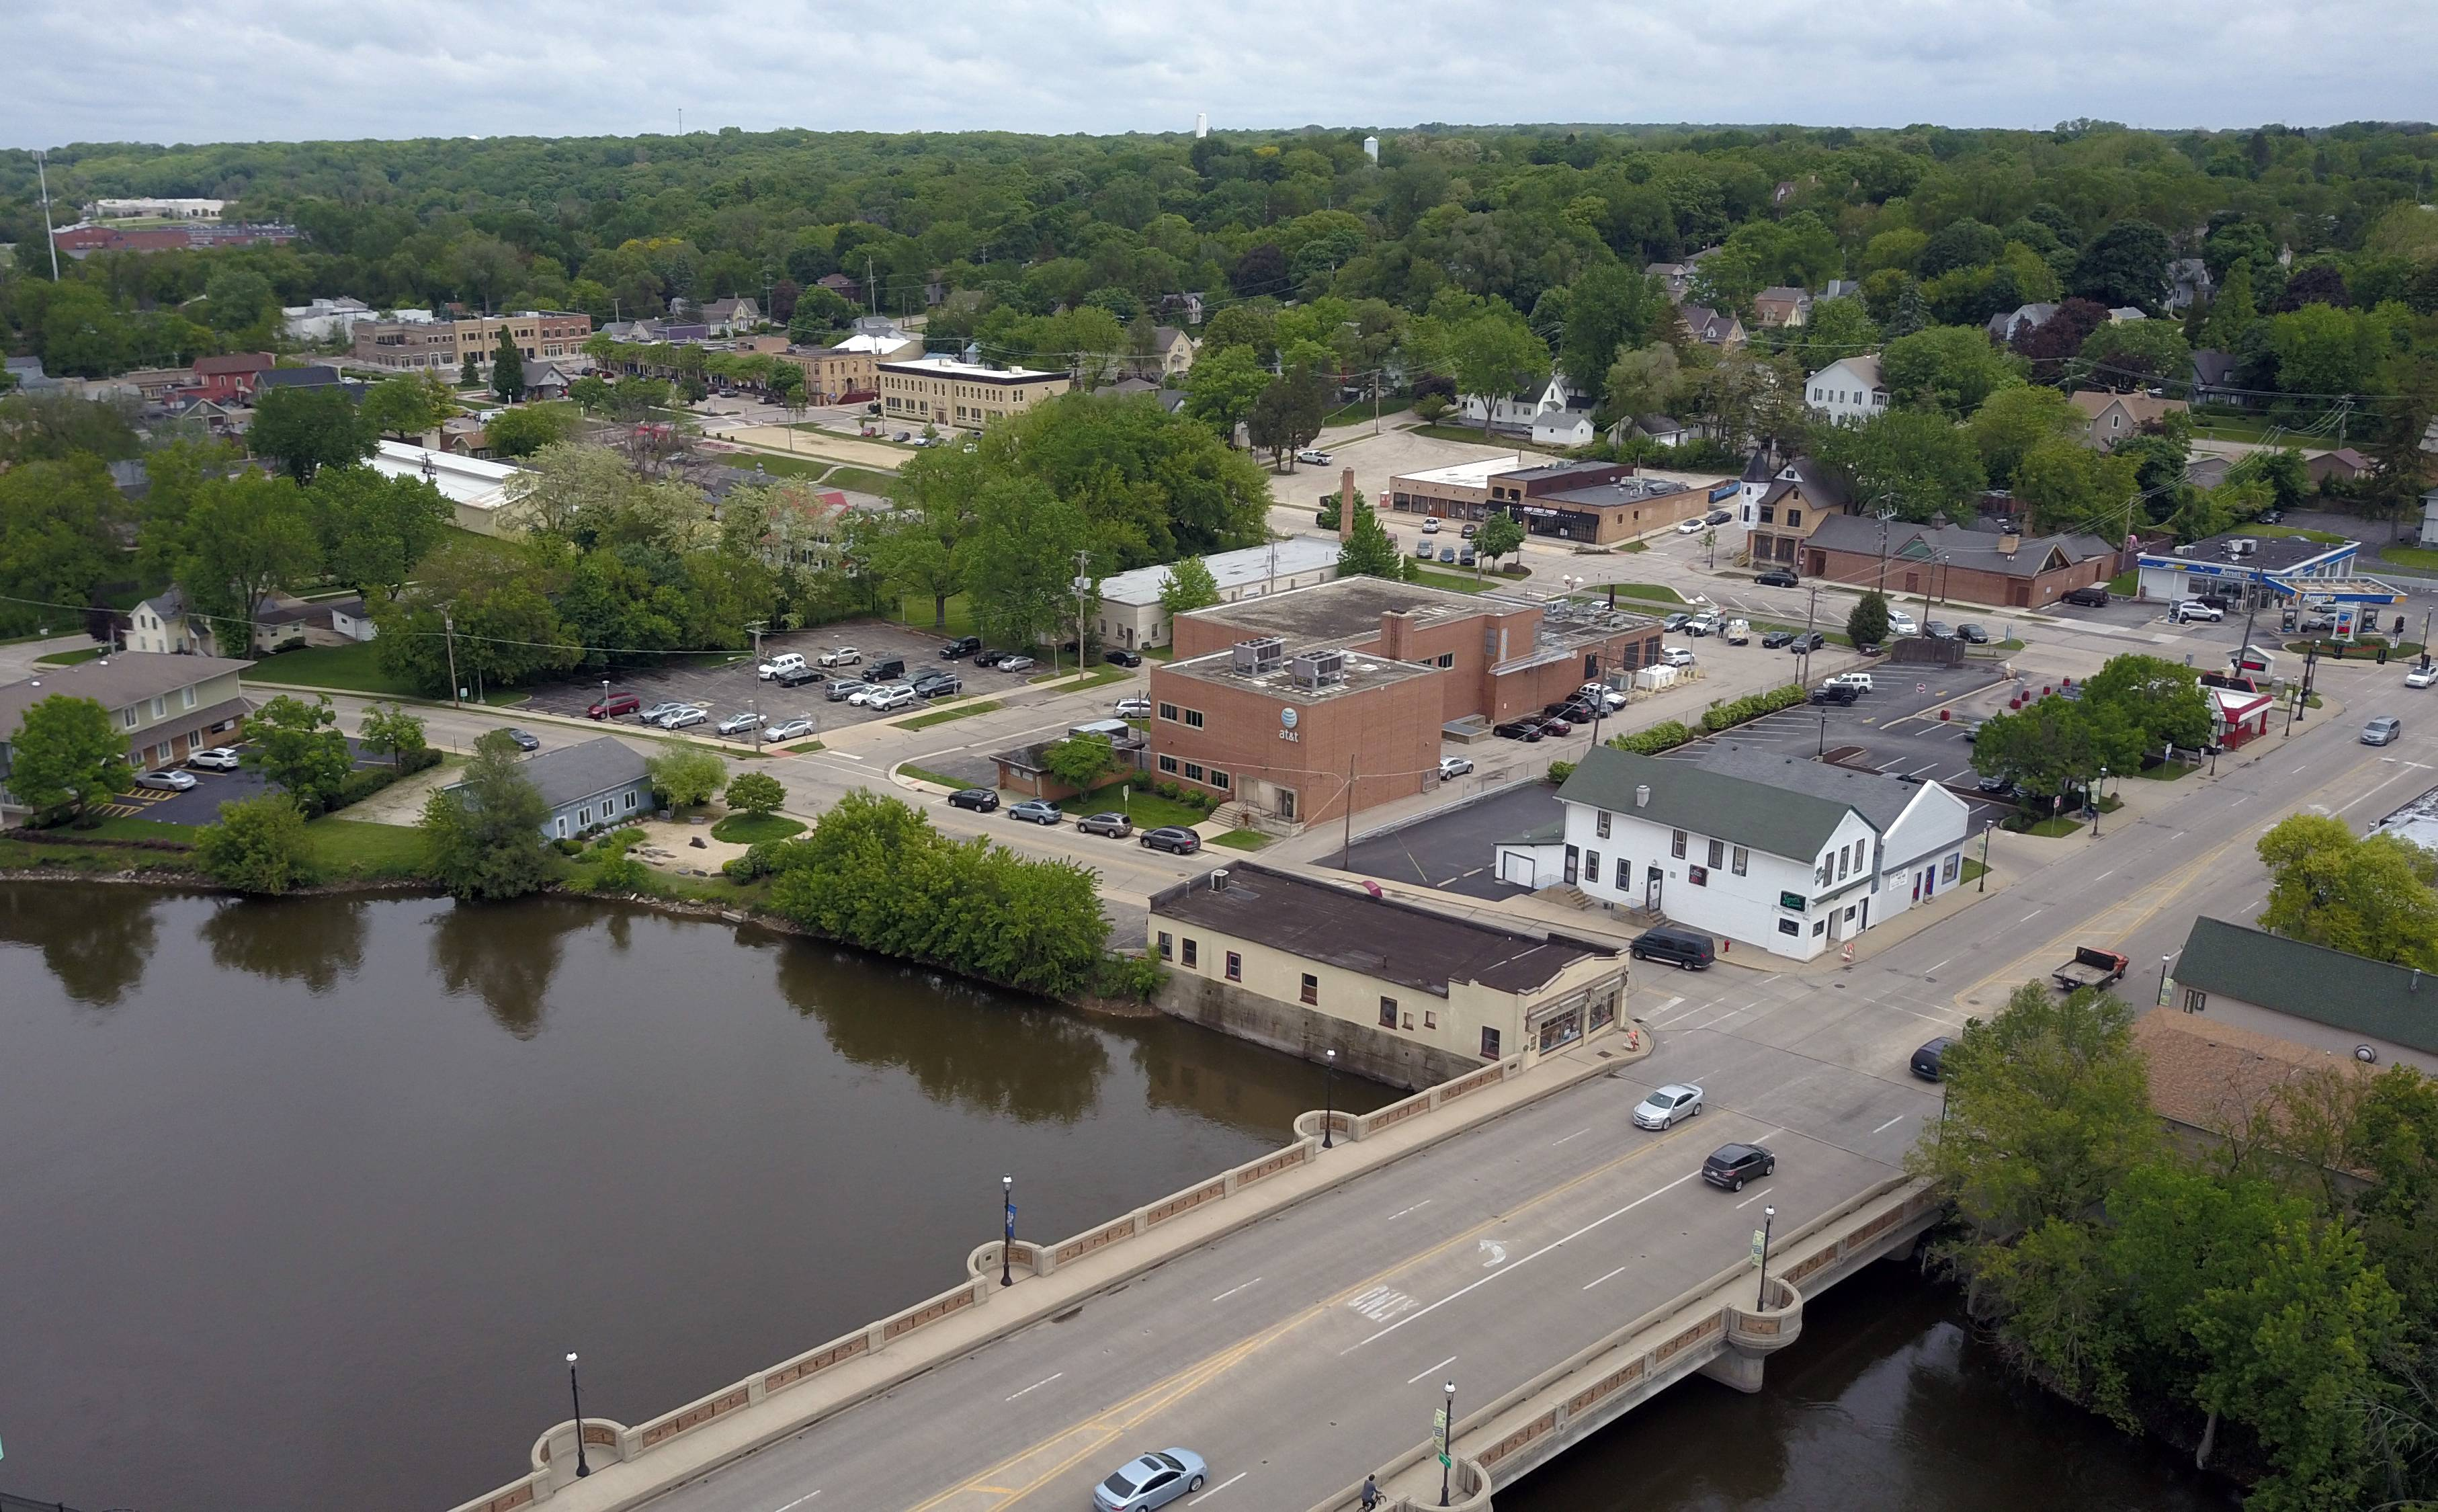 The population of East Dundee, as seen from this drone photo, has grown 11 percent since 2010. But many suburbs recently have been losing population.